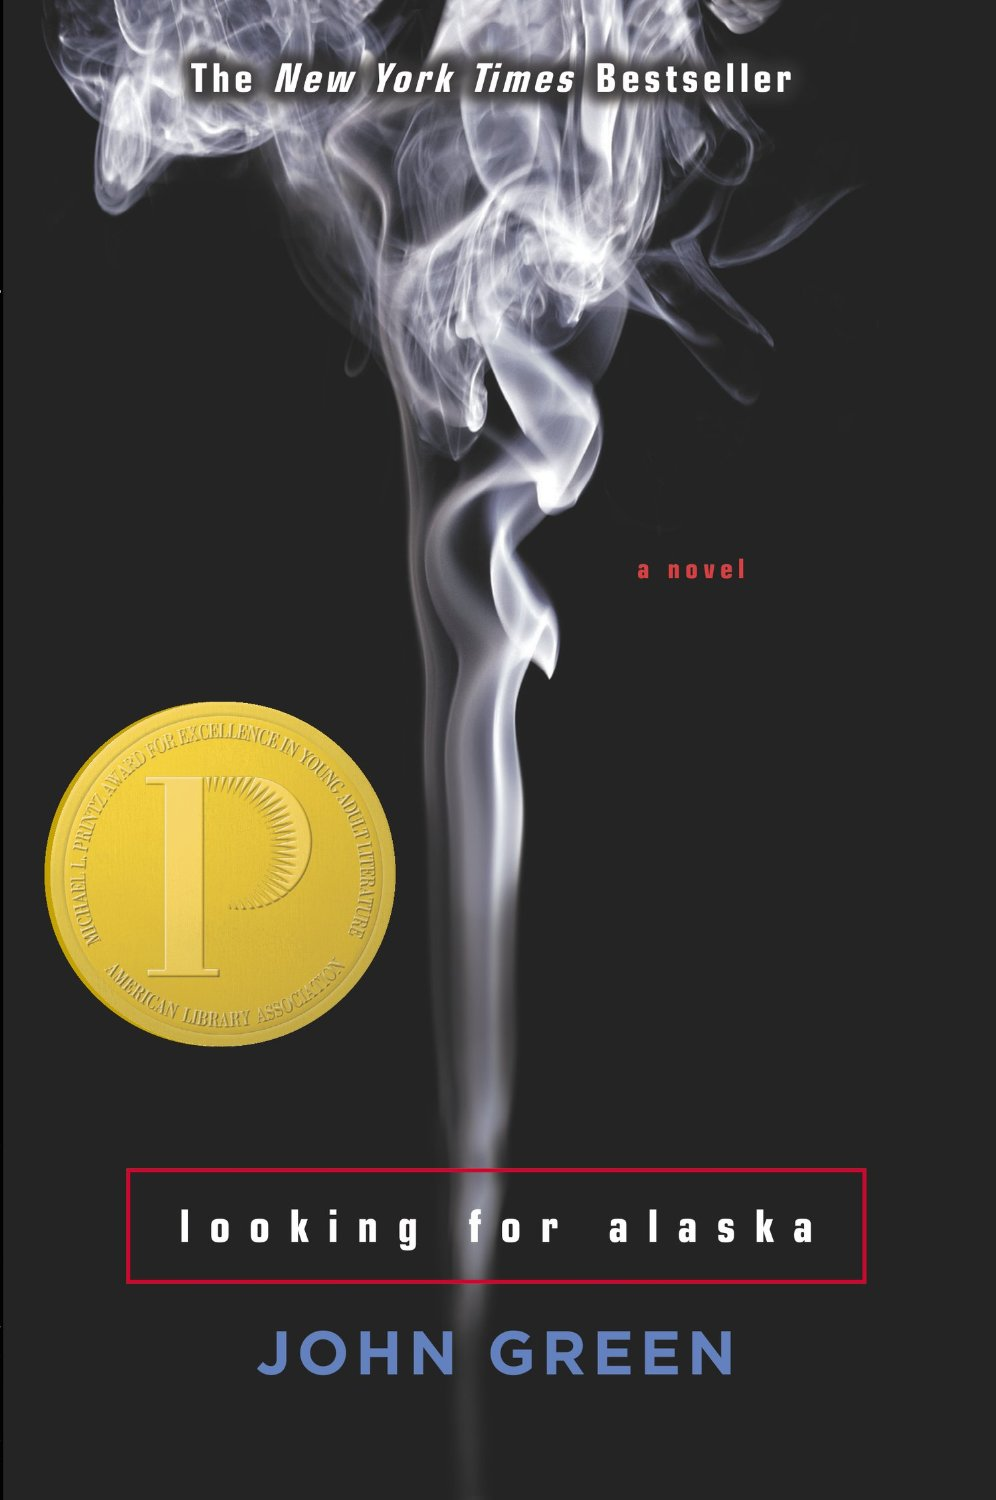 Looking for Alaska by John Green book cover